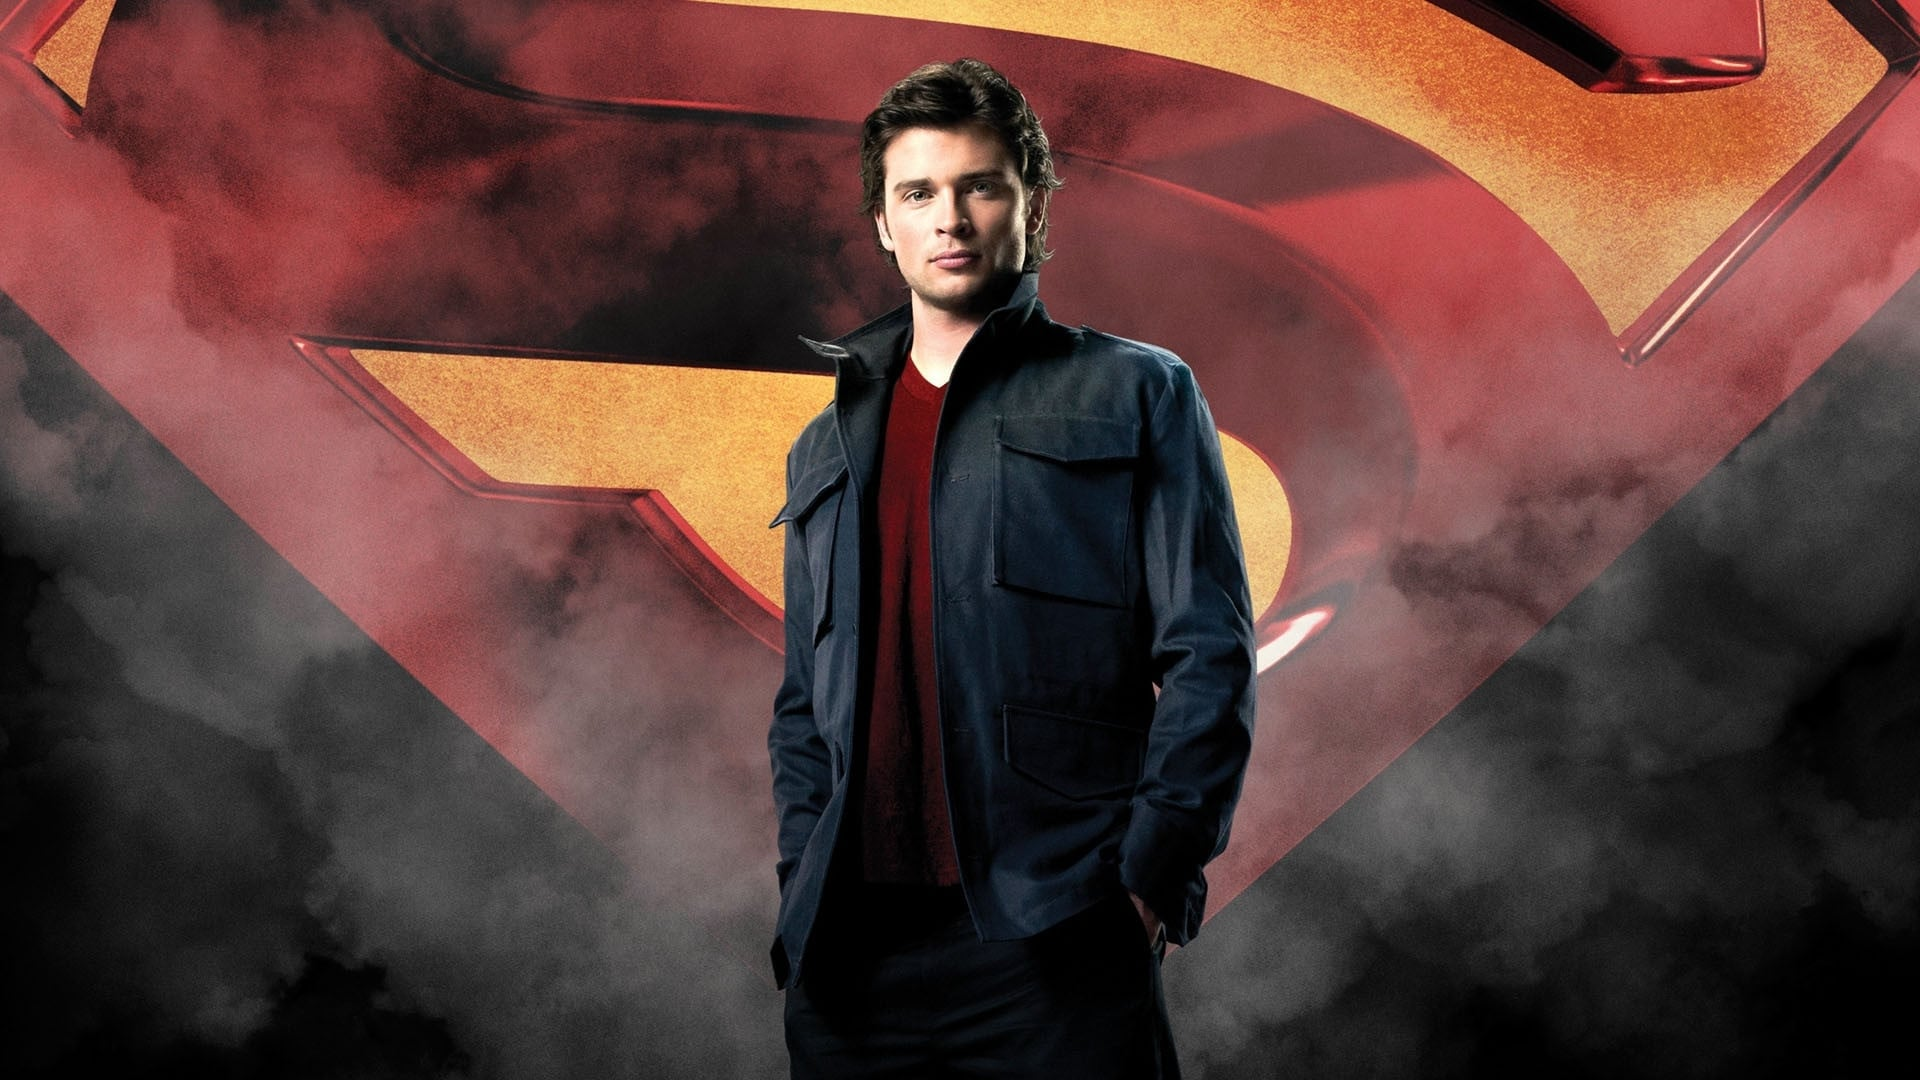 Smallville - Season 10 Episode 1 Lazarus